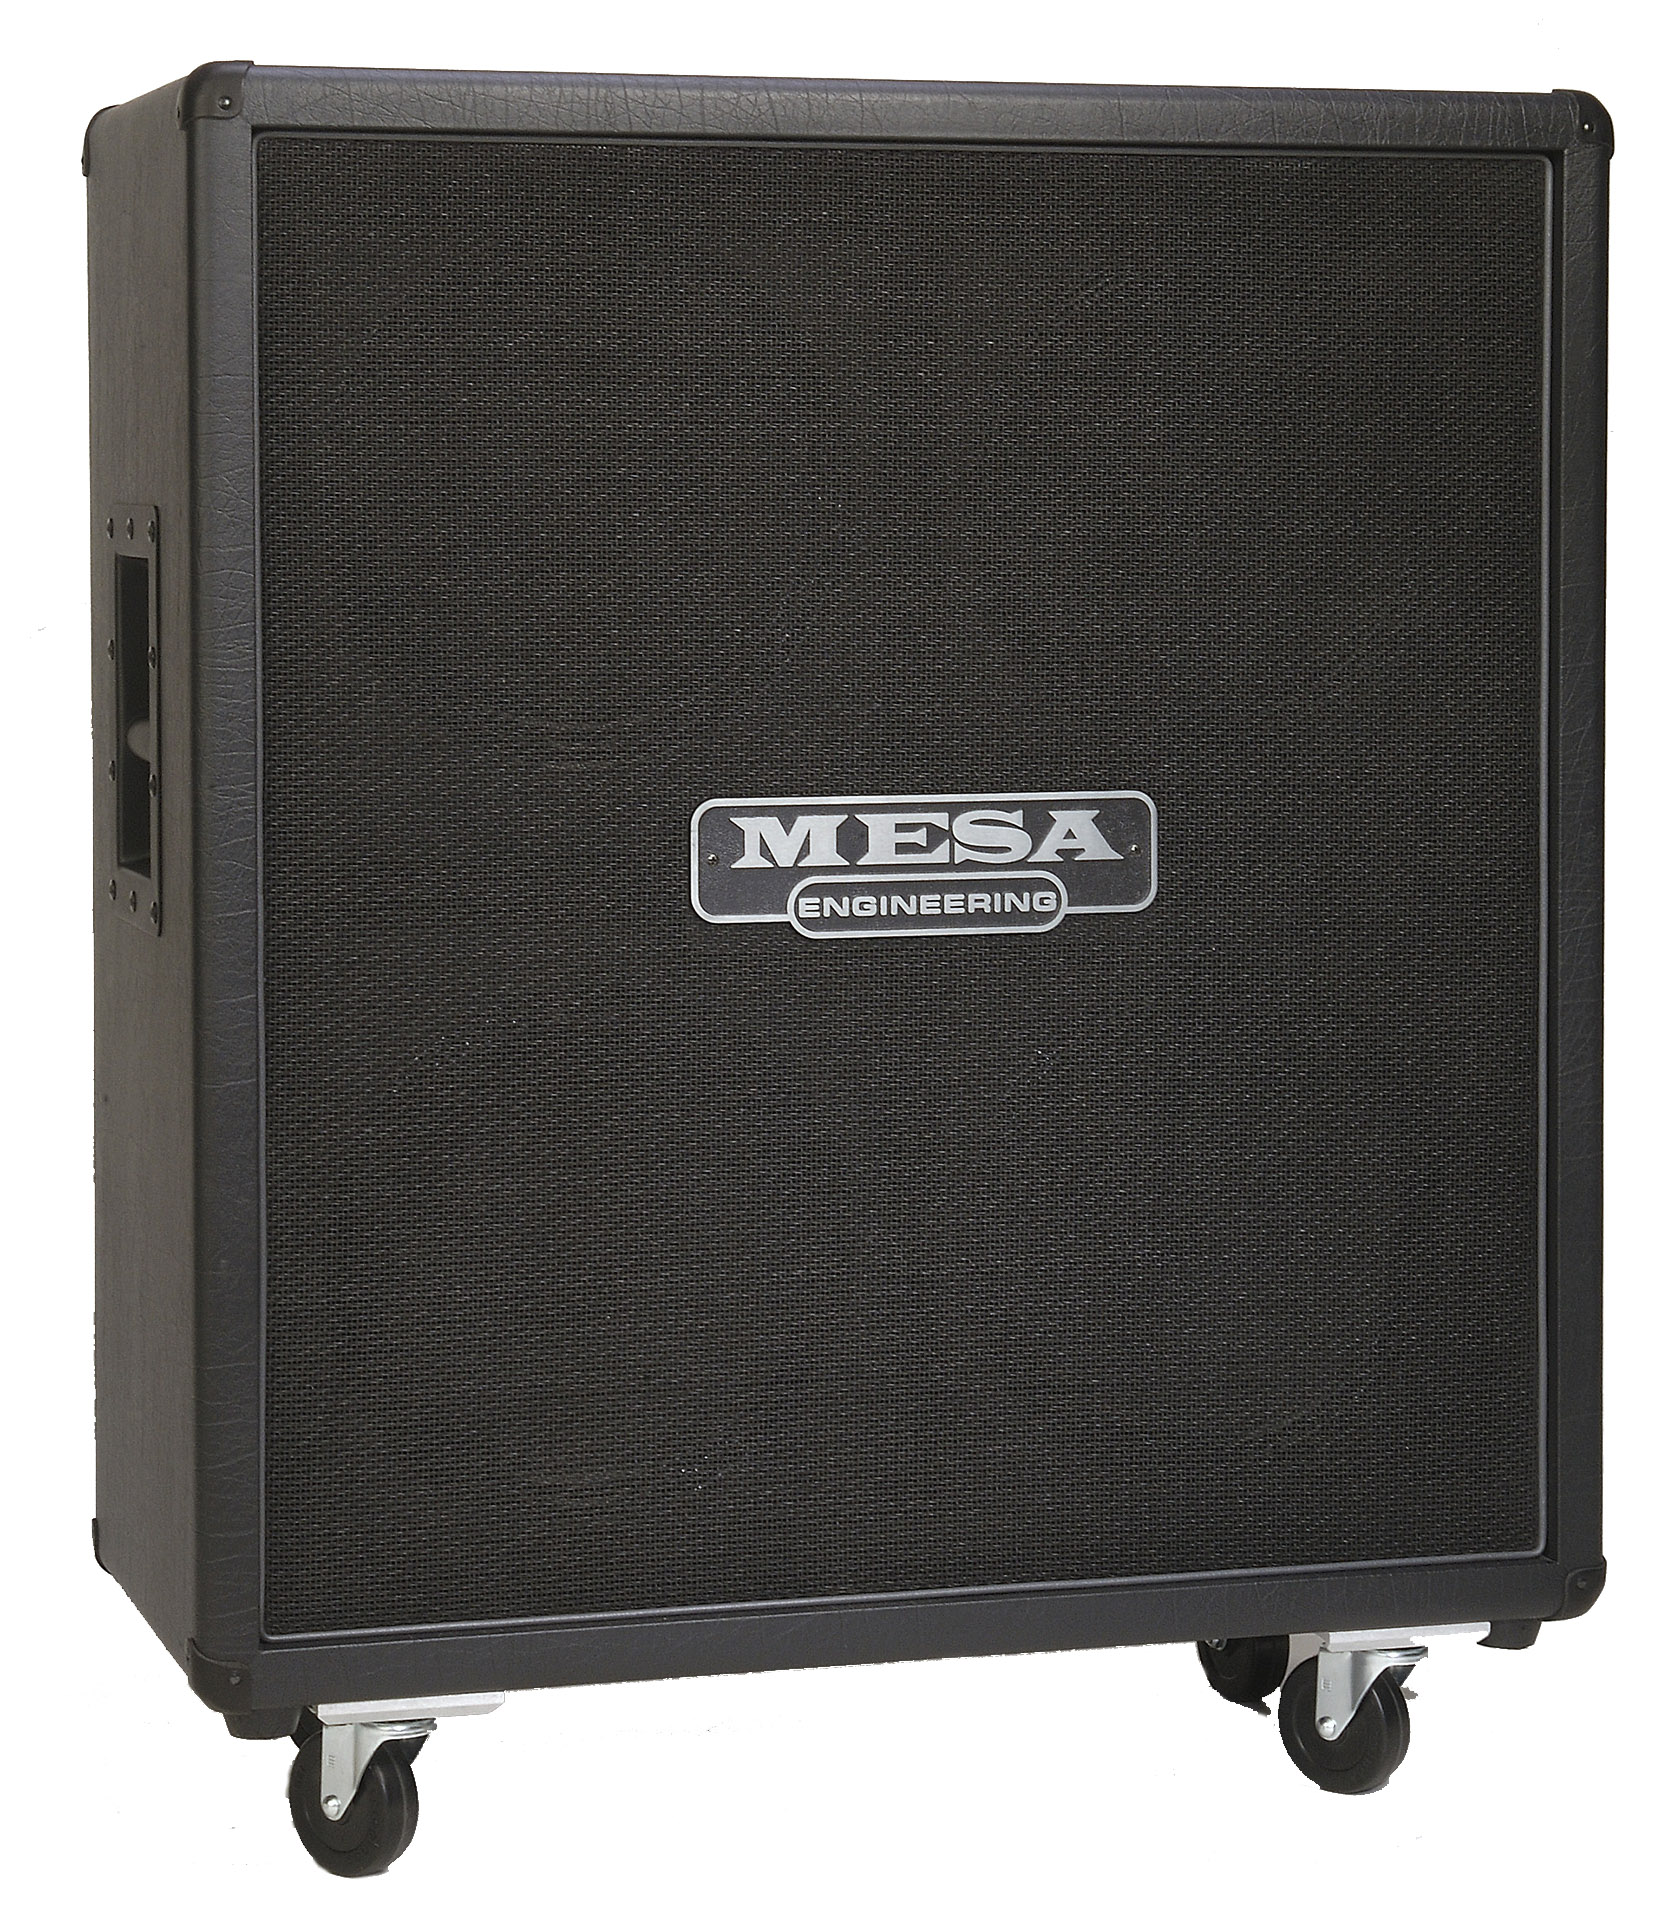 Melody House Musical Instruments Store - 4x12 Recto Standard Straight